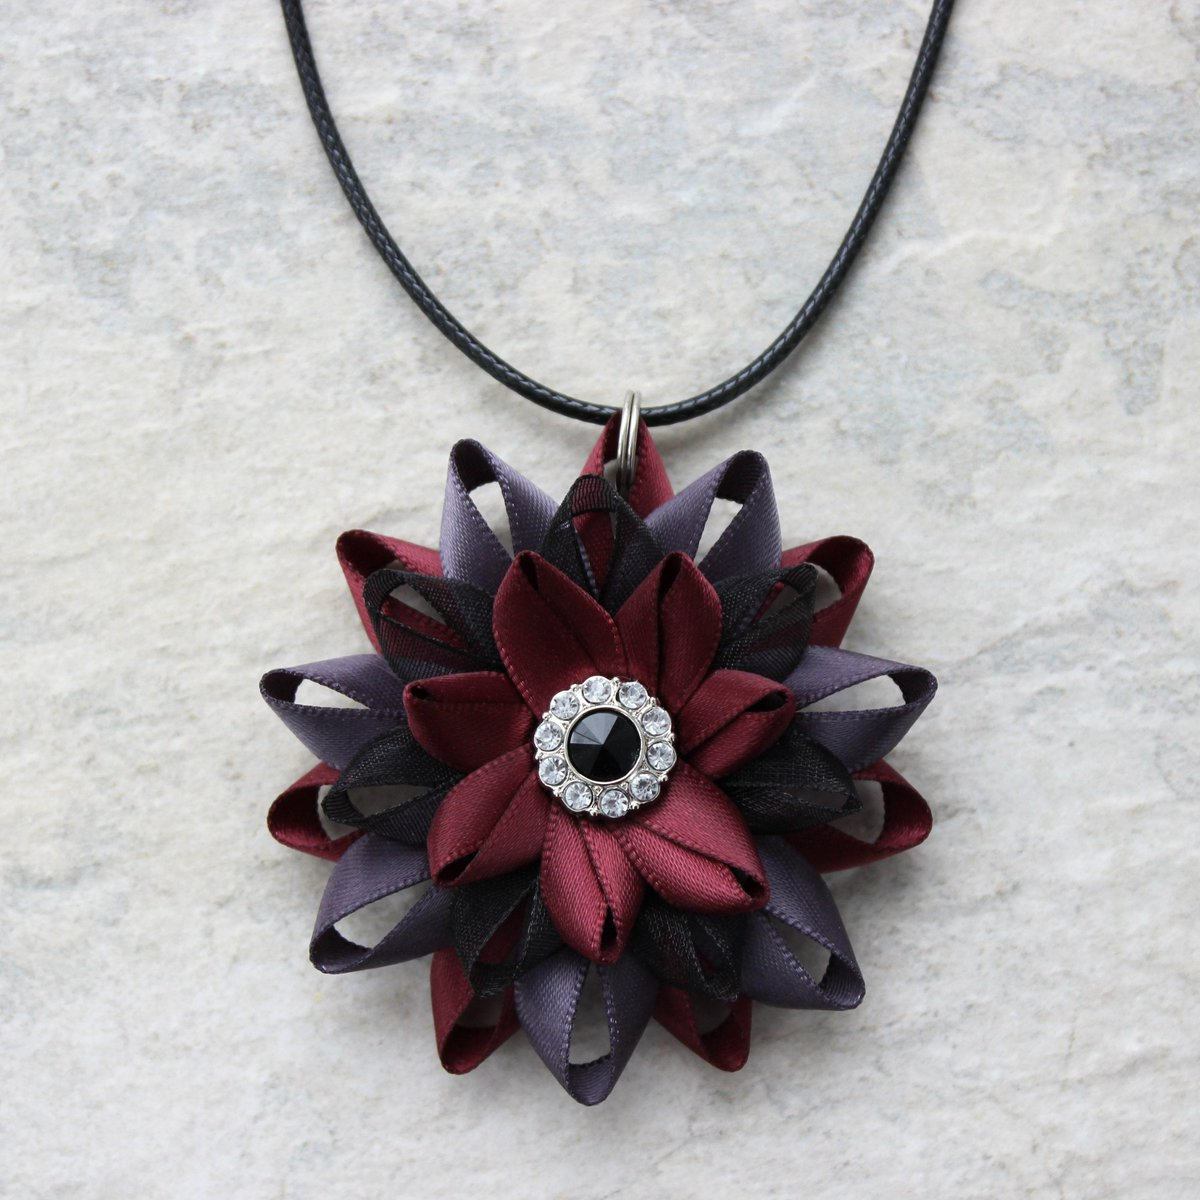 Unique Gift for Her, Unique Necklace Gift, Burgundy Necklace Set, Jewelry Gift Ideas, Gift for Coworker, Burgundy, Metal Gray, Black Organza http://tuppu.net/488ecfd4  #store #sale #shop #etsyshop #shopping #shopsmall #etsy